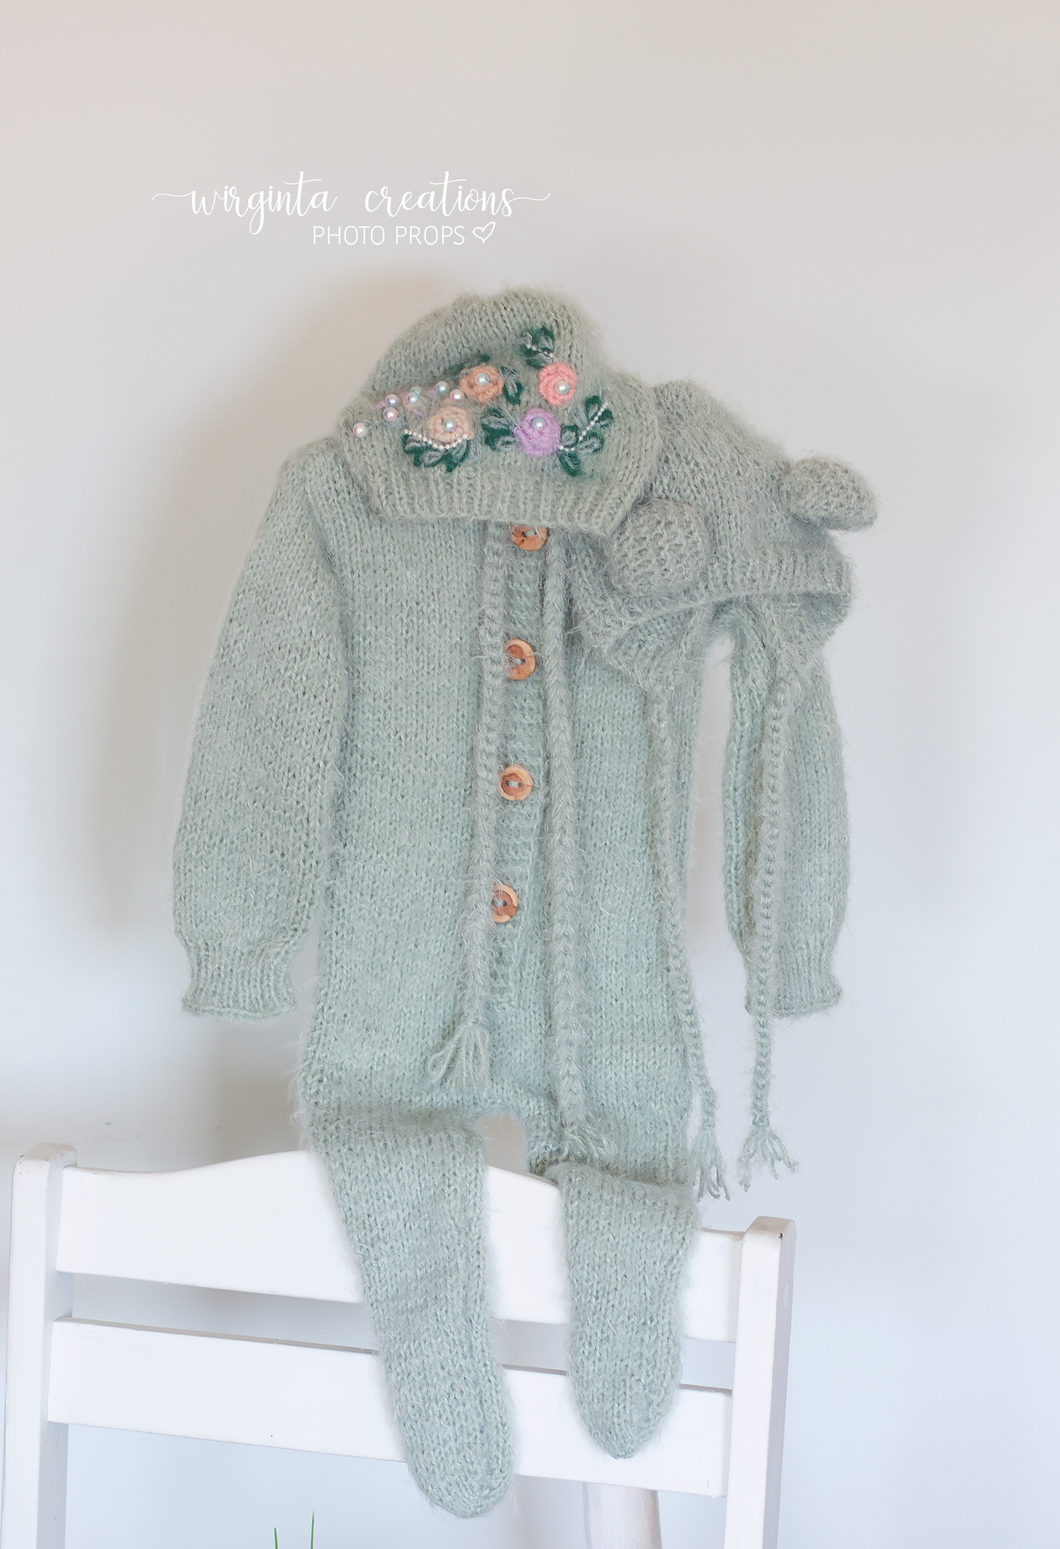 Fuzzy footed romper and matching hats set, Teddy bear bonnet. 9-18 months old, teal, mint. Knitted. Ready to send